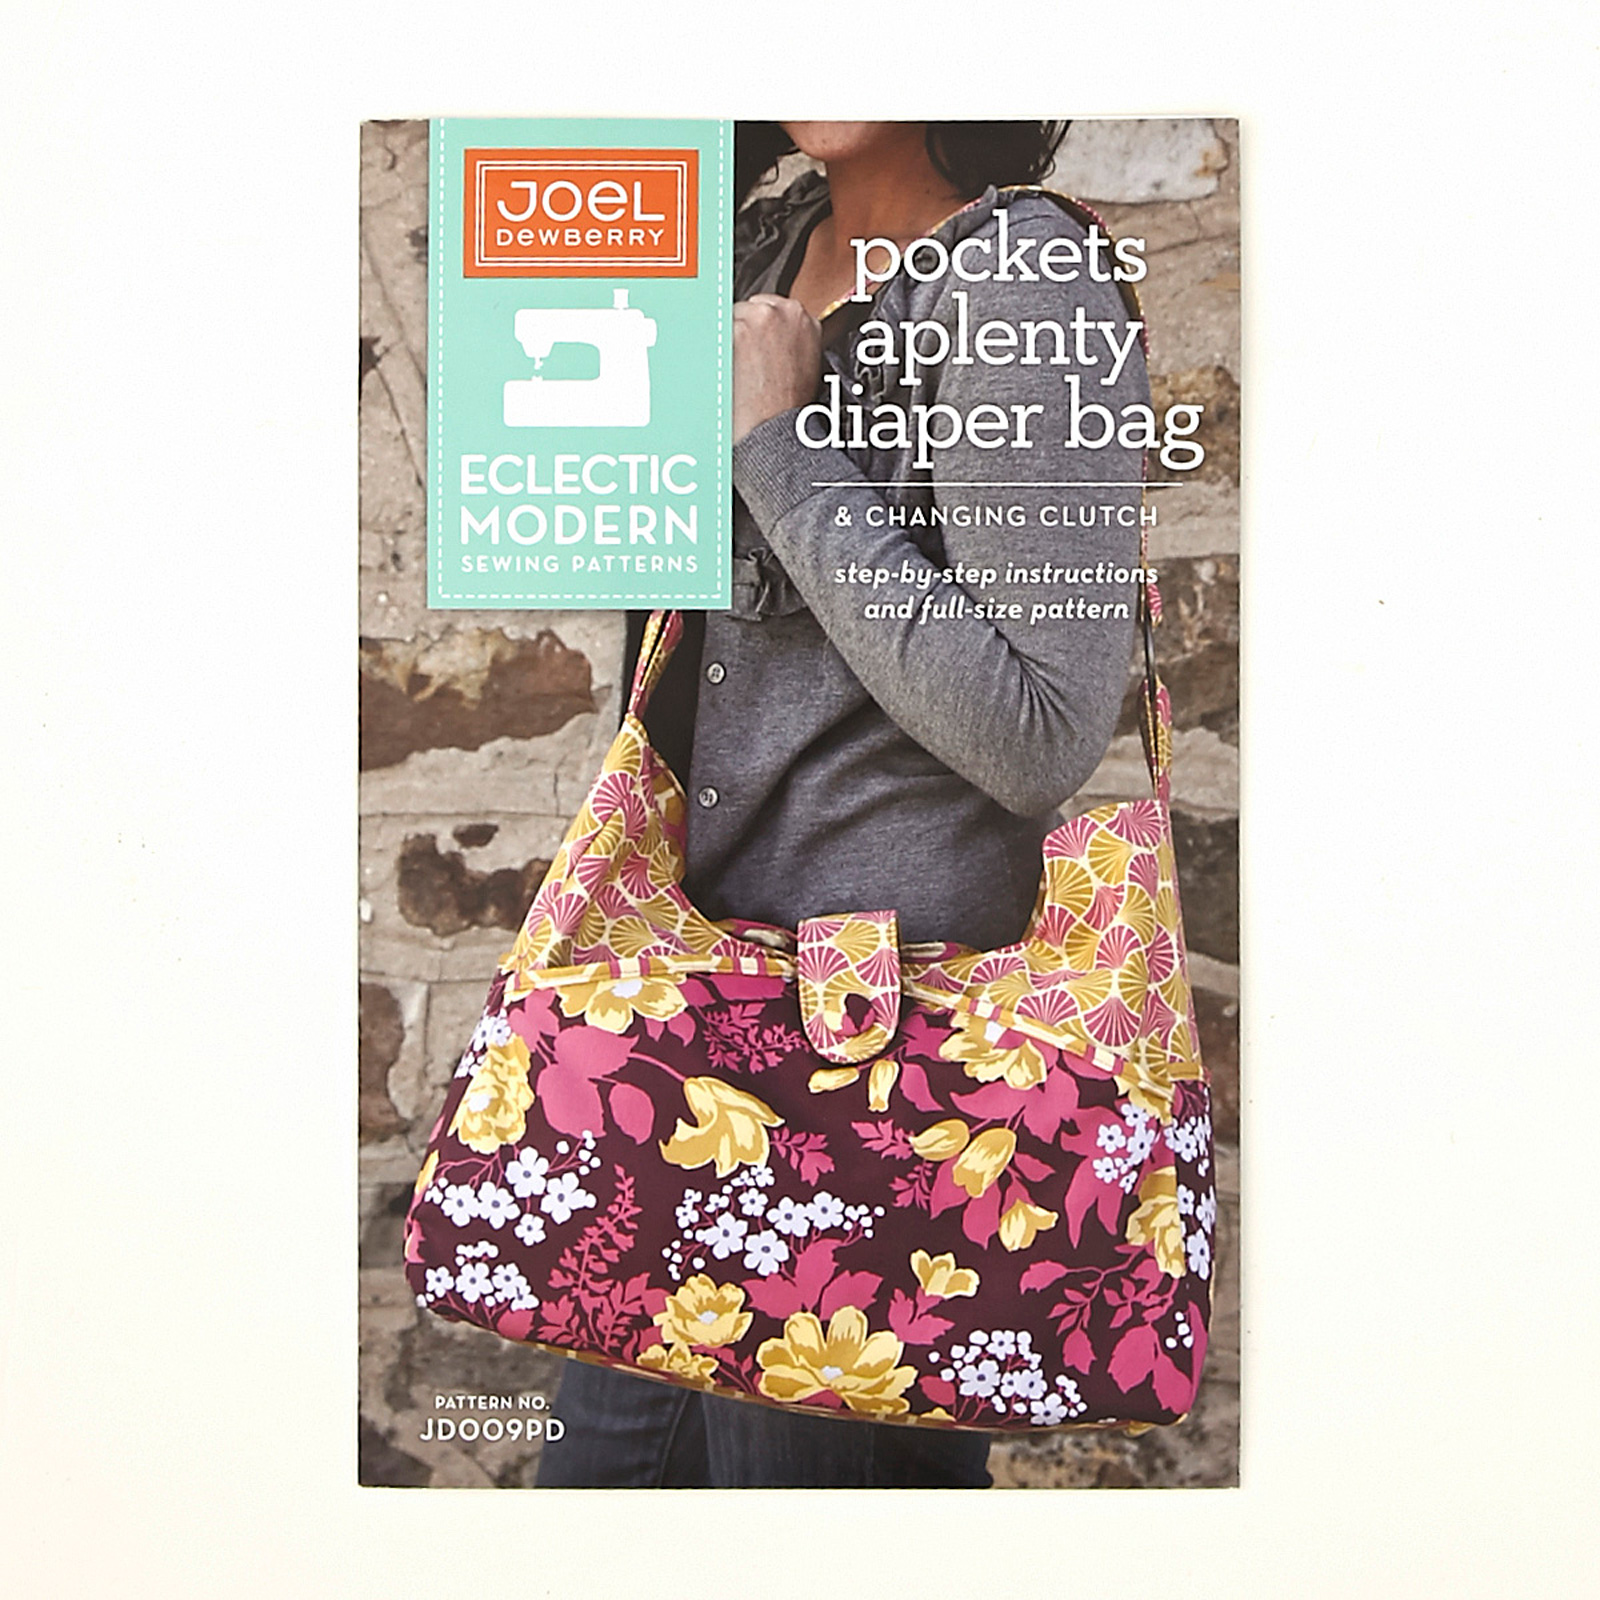 Joel Dewberry Pockets Aplenty Diaper Bag & Changing